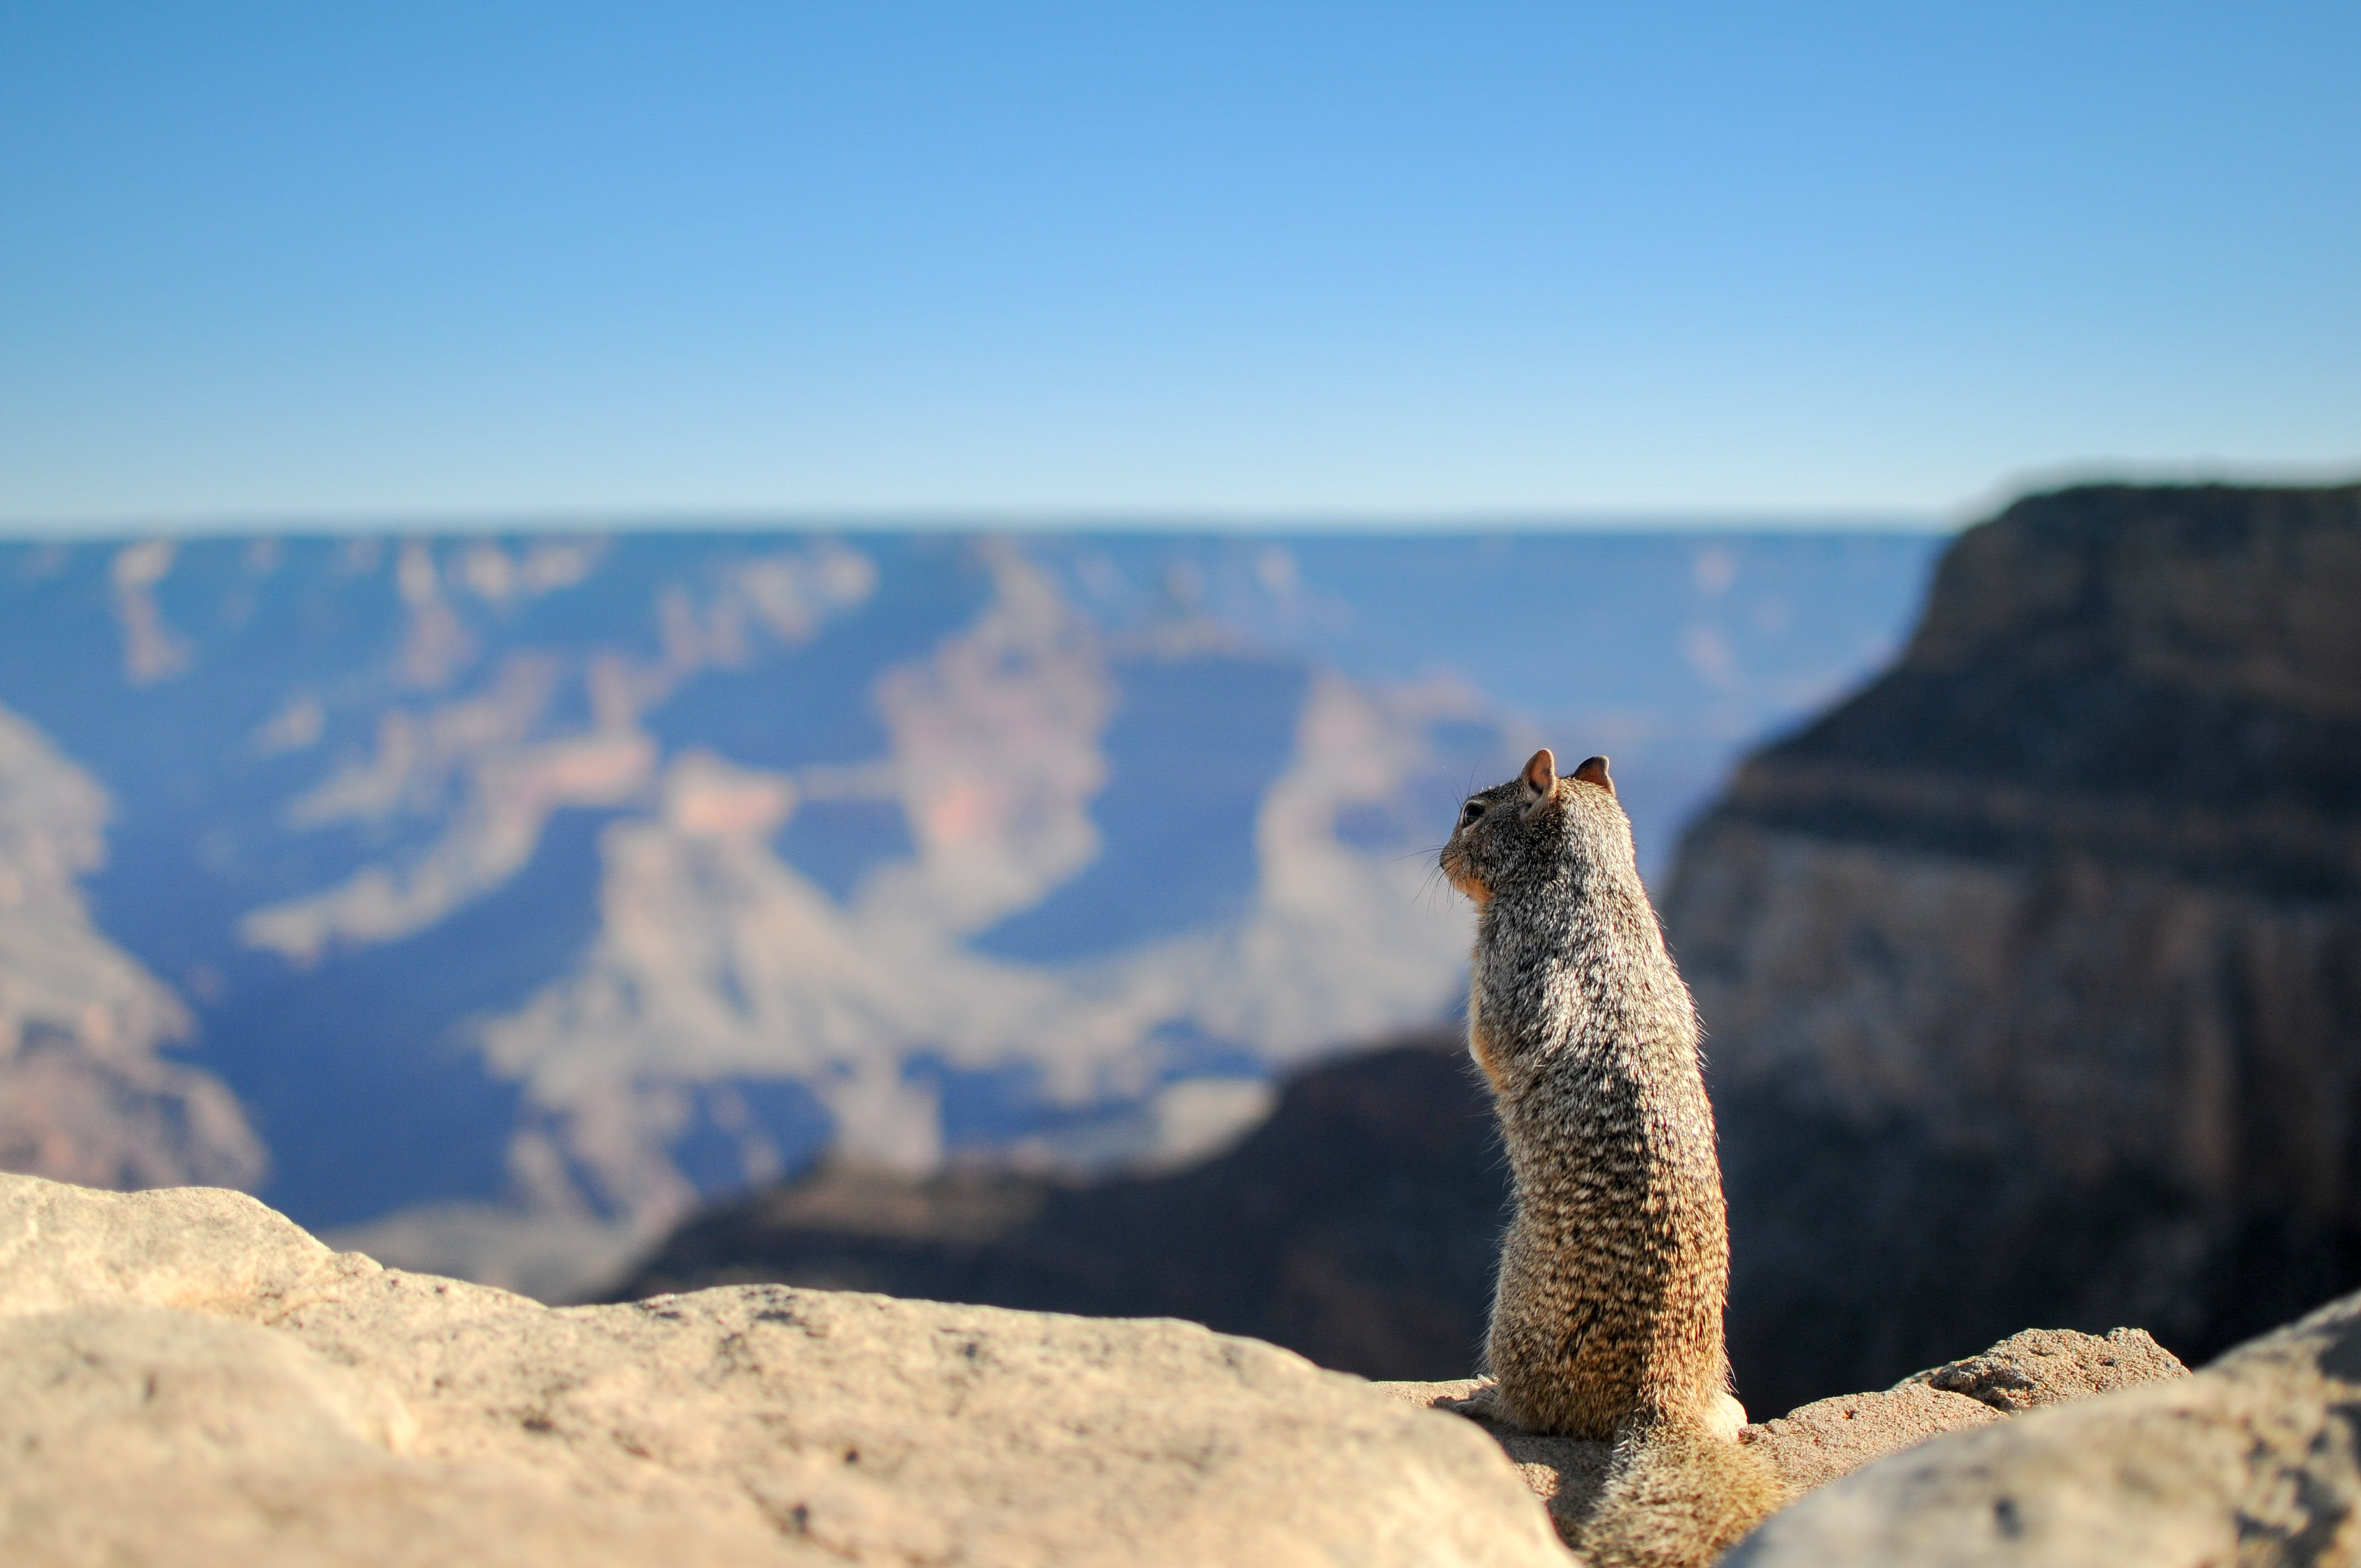 Brown Squirrel Standing on Brown Rock Formation